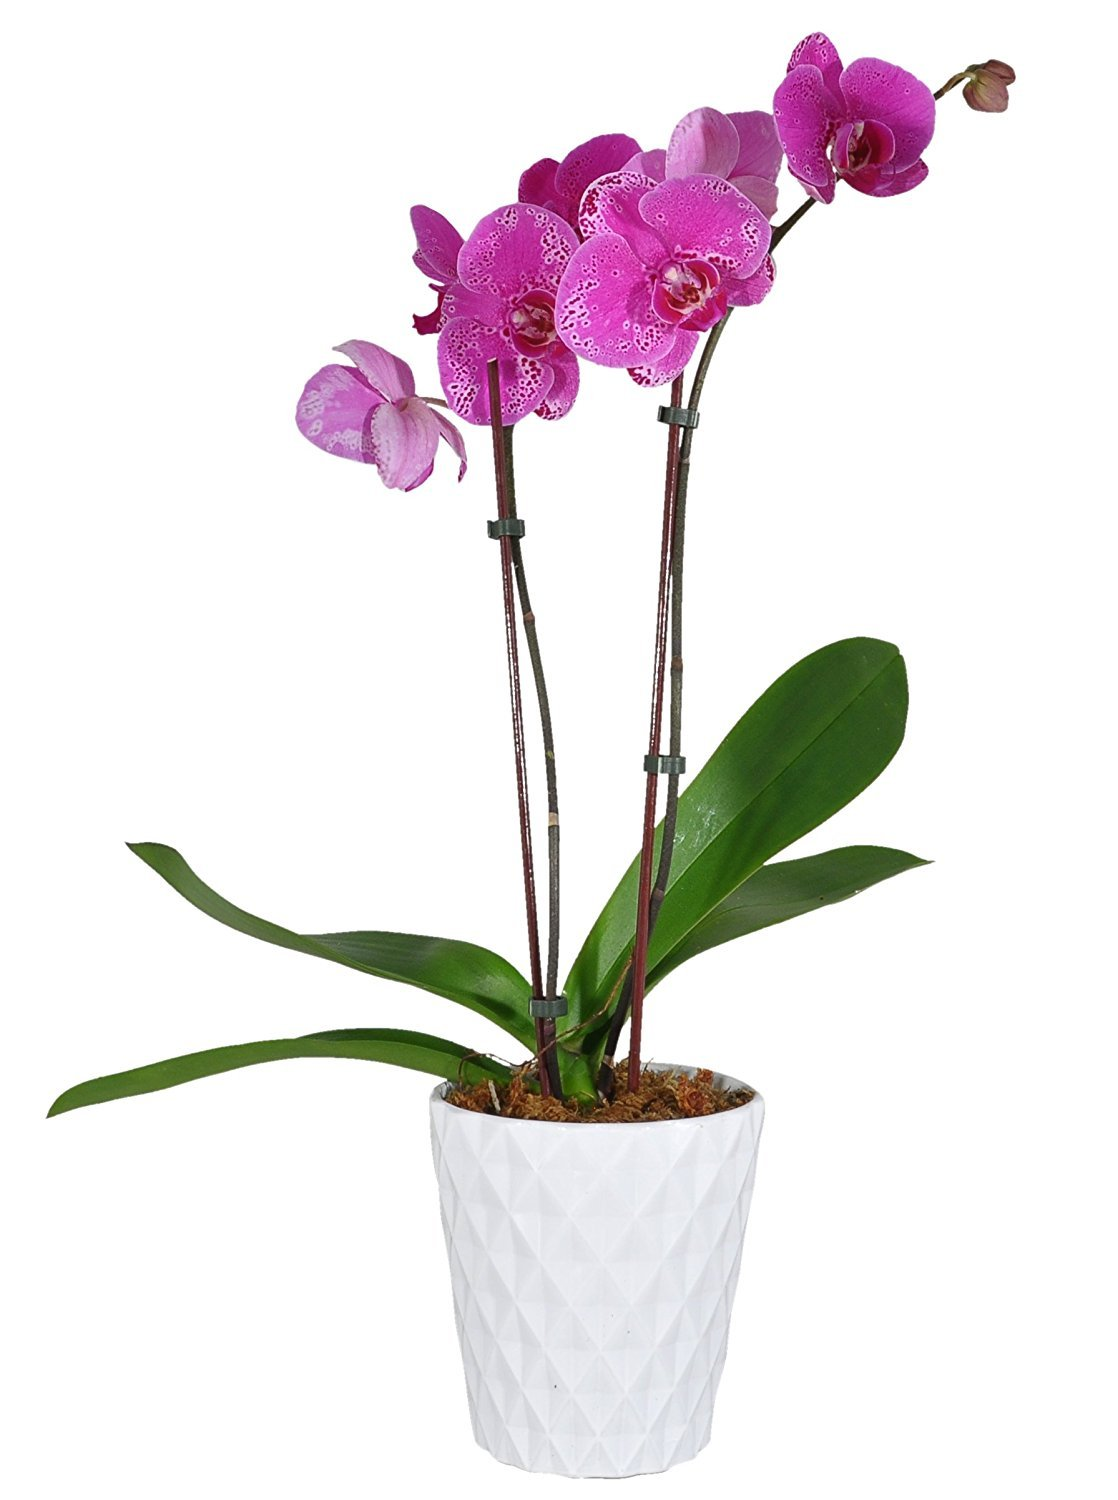 Costa Farms Live Phalaenopsis Orchid, 27-Inch Tall, Double Stem Pink-Purple Blooms, in 5-Inch Décor-Ready White Color Ceramic, Great Gift by Costa Farms